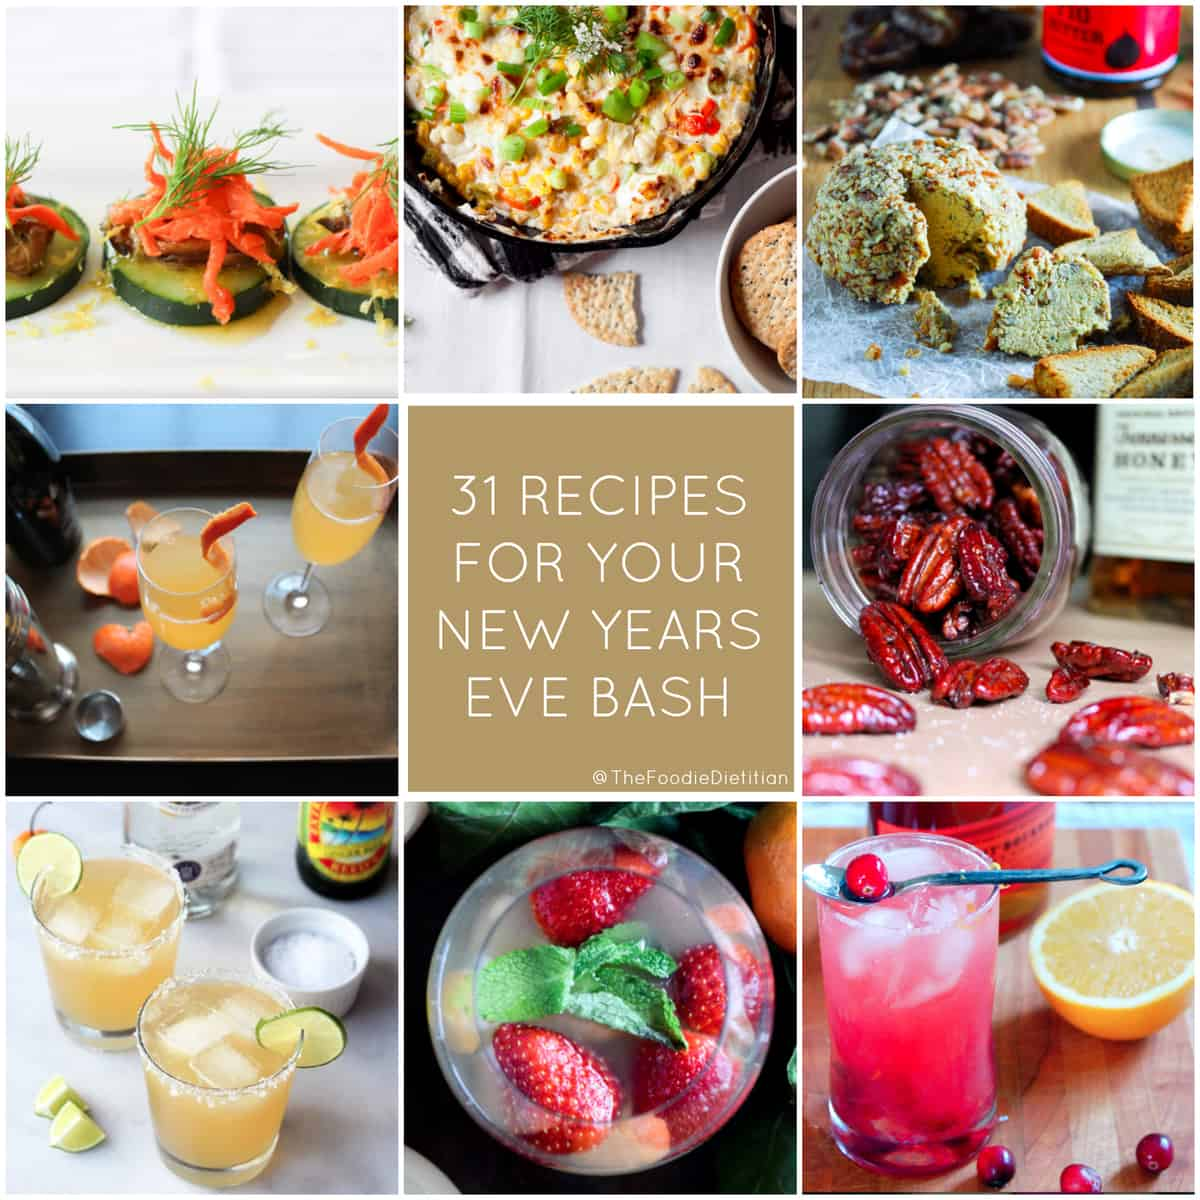 A round-up of 31 festive cocktail and appetizer recipes for your New Years Eve bash! | @TheFoodieDietitian